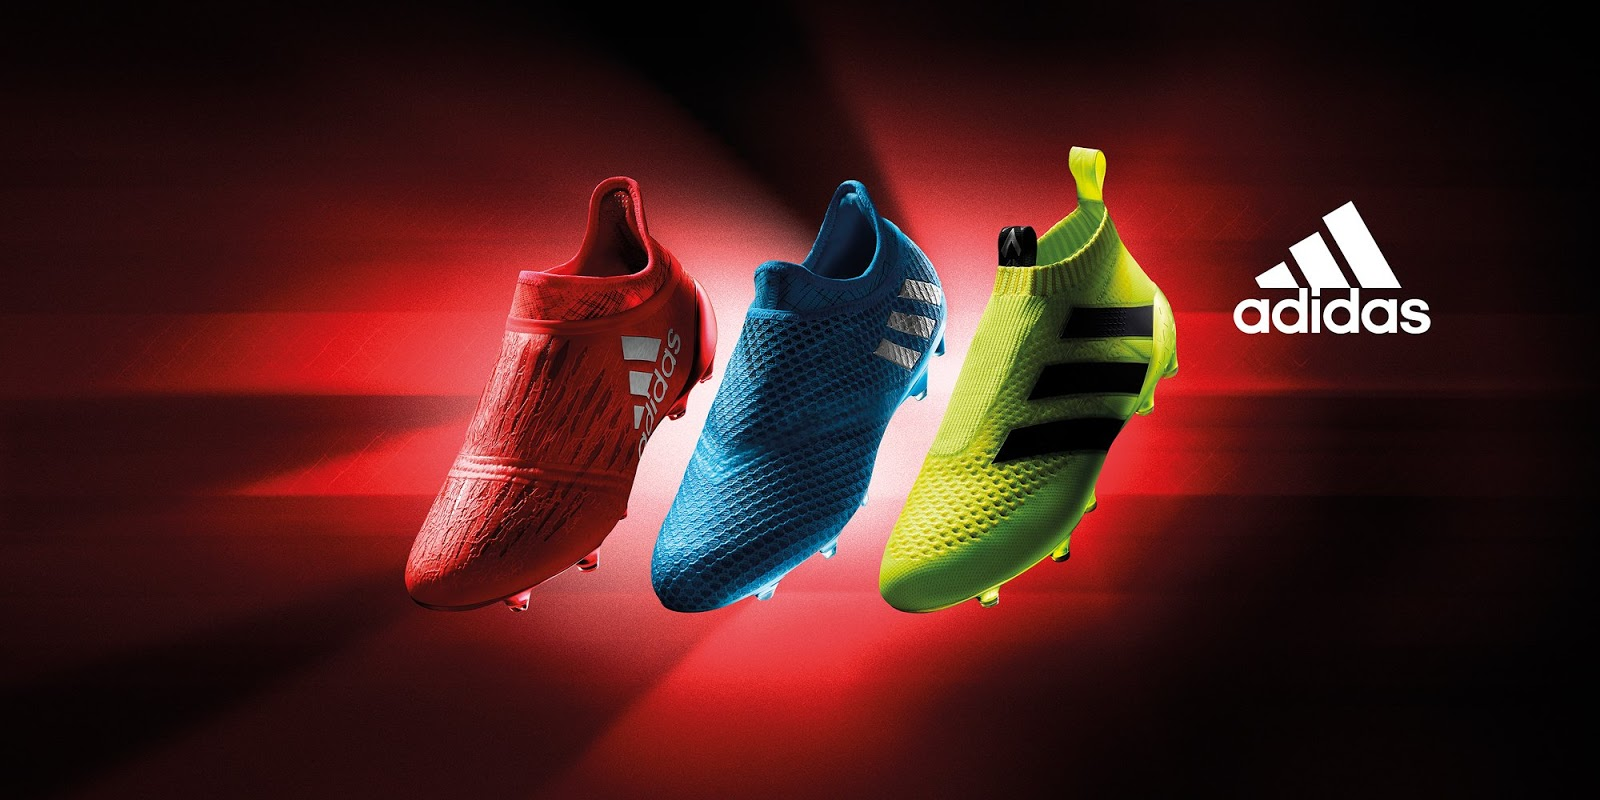 adidas-speed-of-light-2016-17-boots-pack-1.jpg